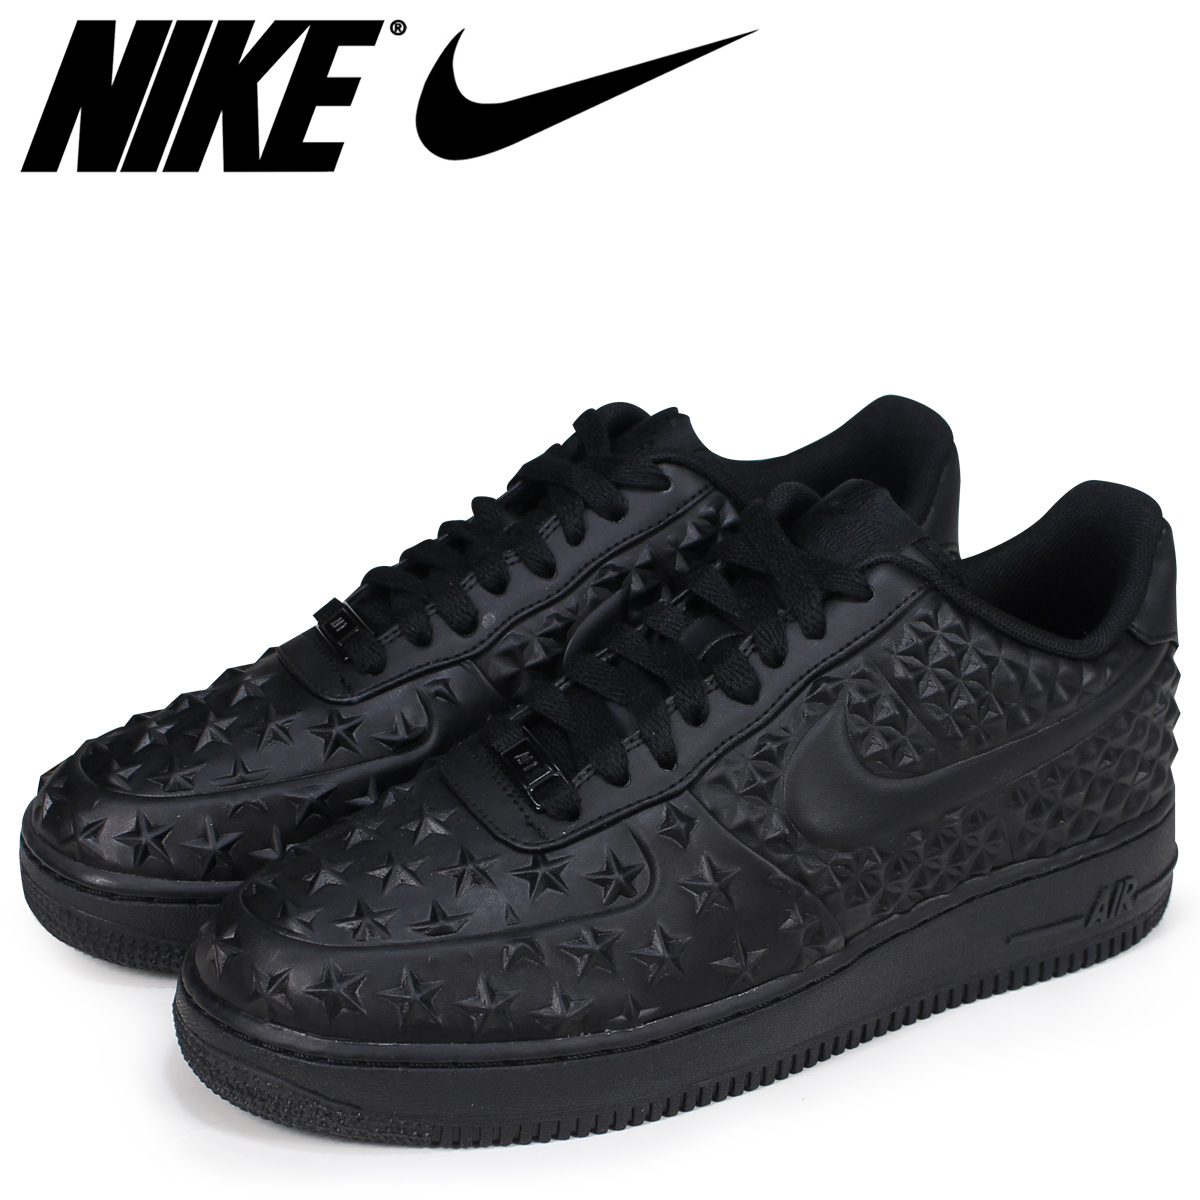 best sneakers d23ff 5b172 NIKE Nike air force 1 07 LV8 sneakers men AIR FORCE 1 LOW INDEPENDENCE DAY  789,104-001 black  load planned Shinnyu load in reservation product 6 29 ...